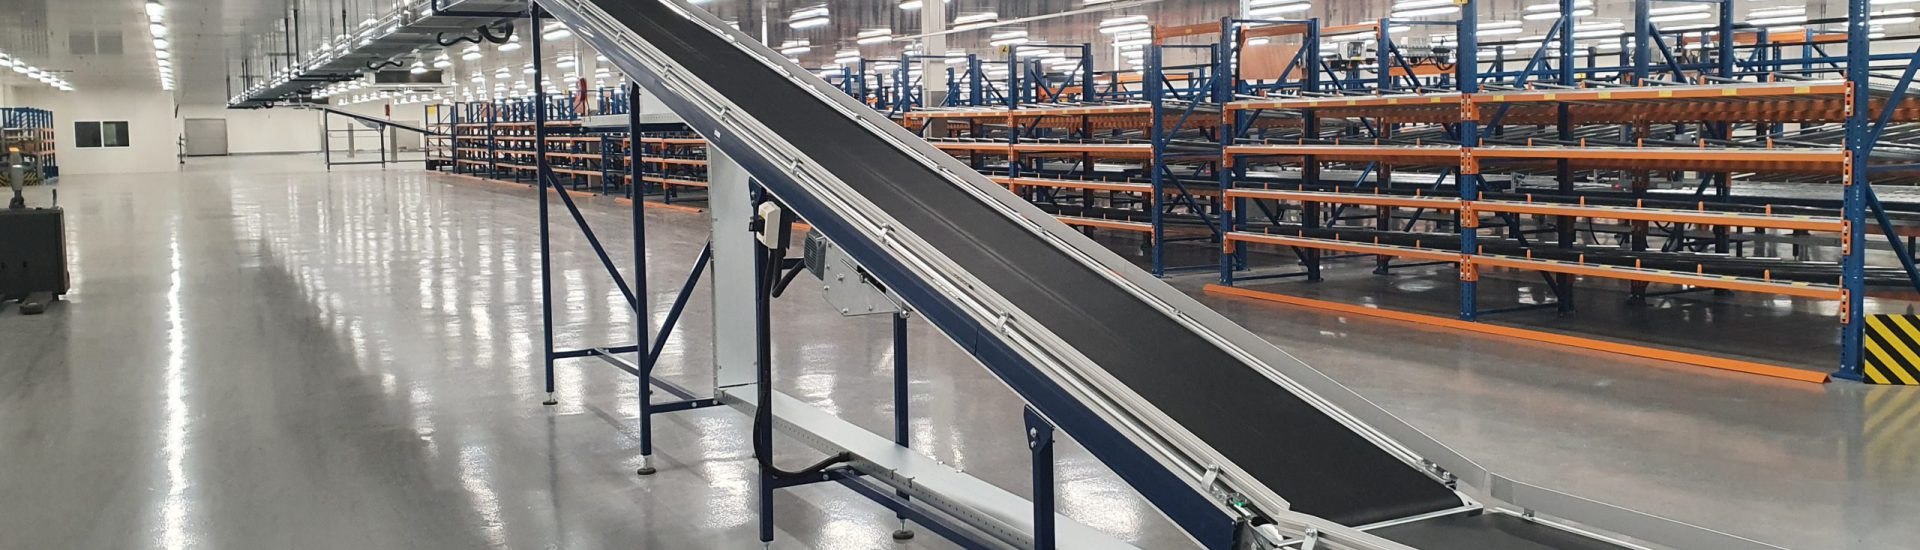 Verticale transportband oplossing